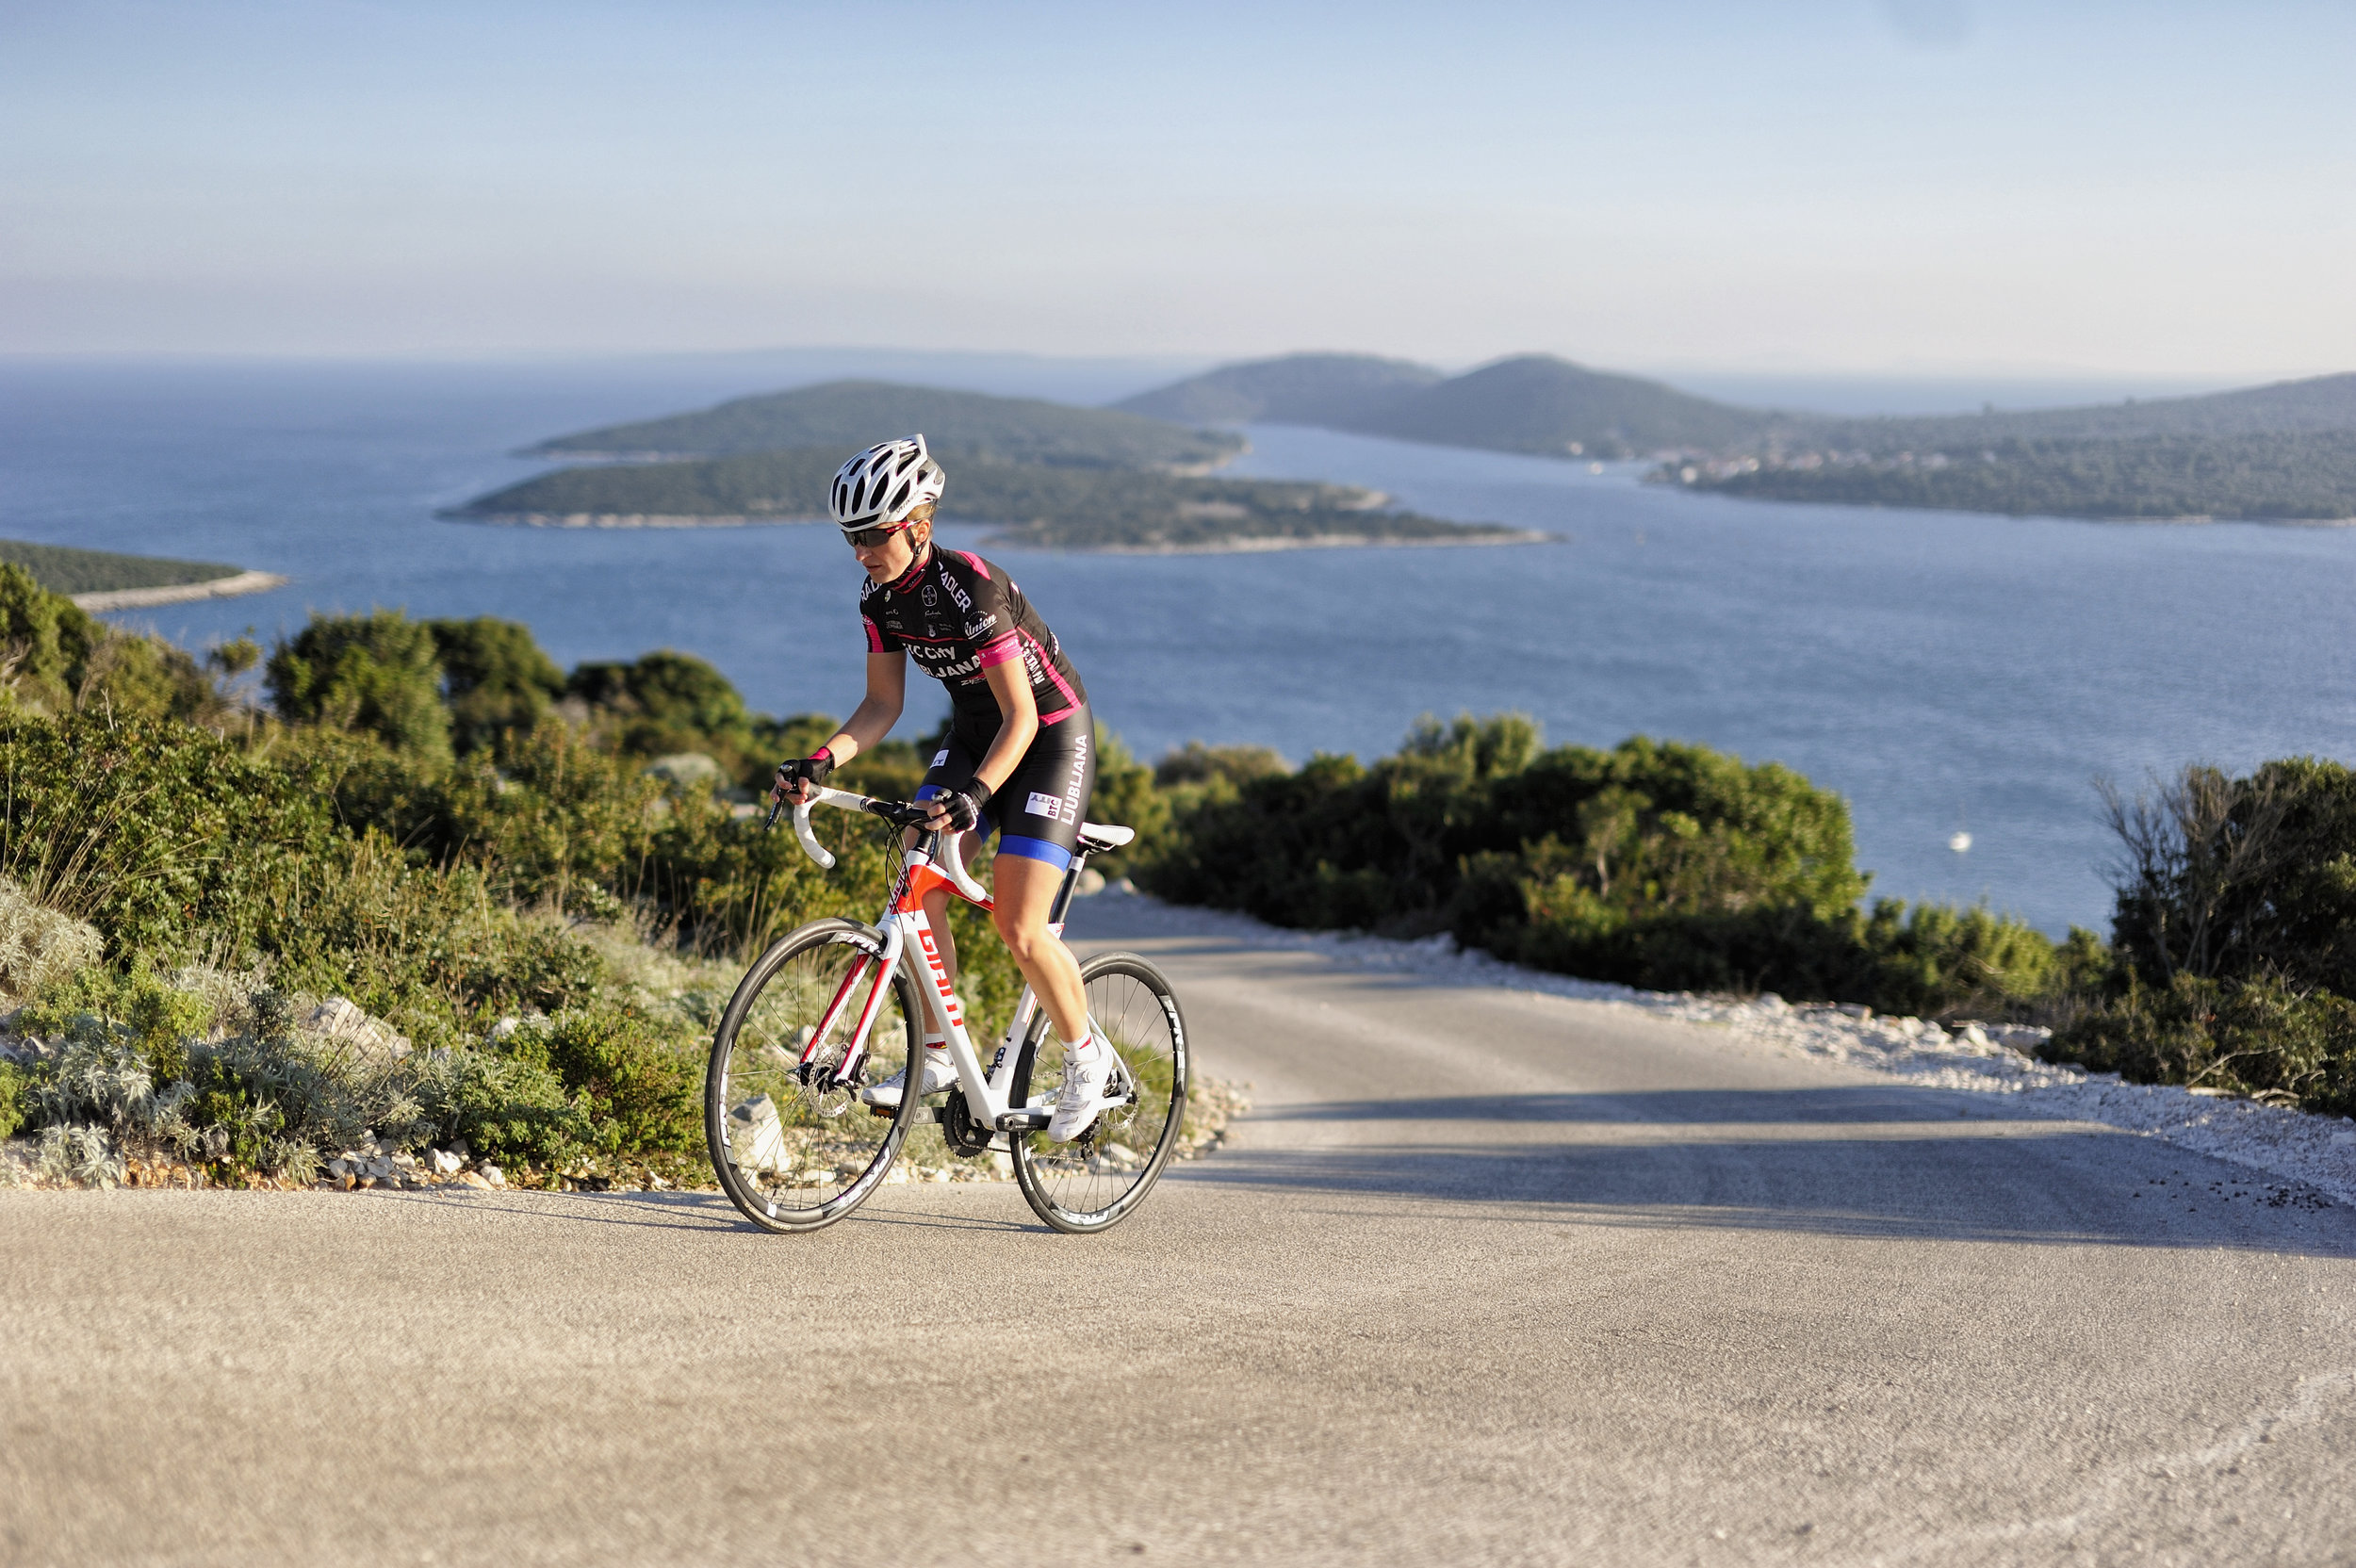 Trans Adriatic Cycling - Cycle across 6 islands and tackle the coastal hills that reveal stunning panoramas of Croatia - the most beautiful country in Europe.